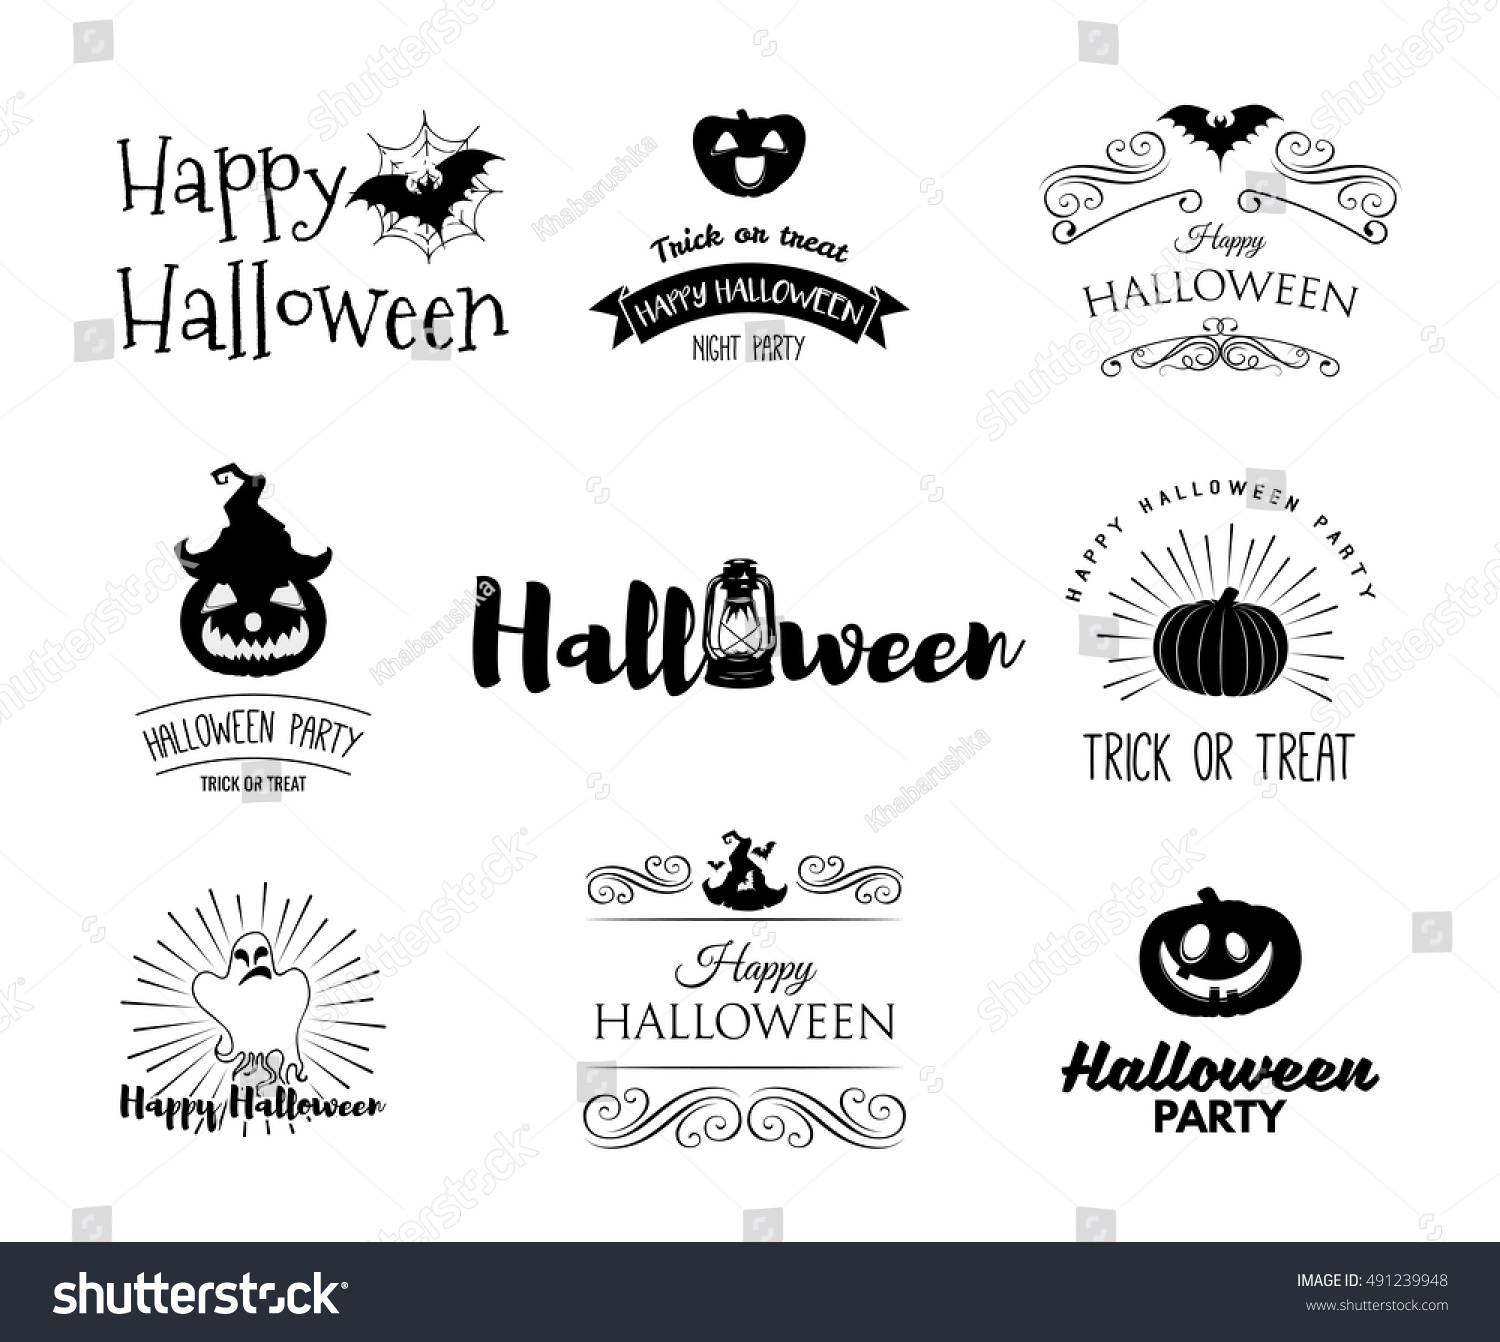 Halloween Party Invitation Label Templates Holiday Stock Vector ...